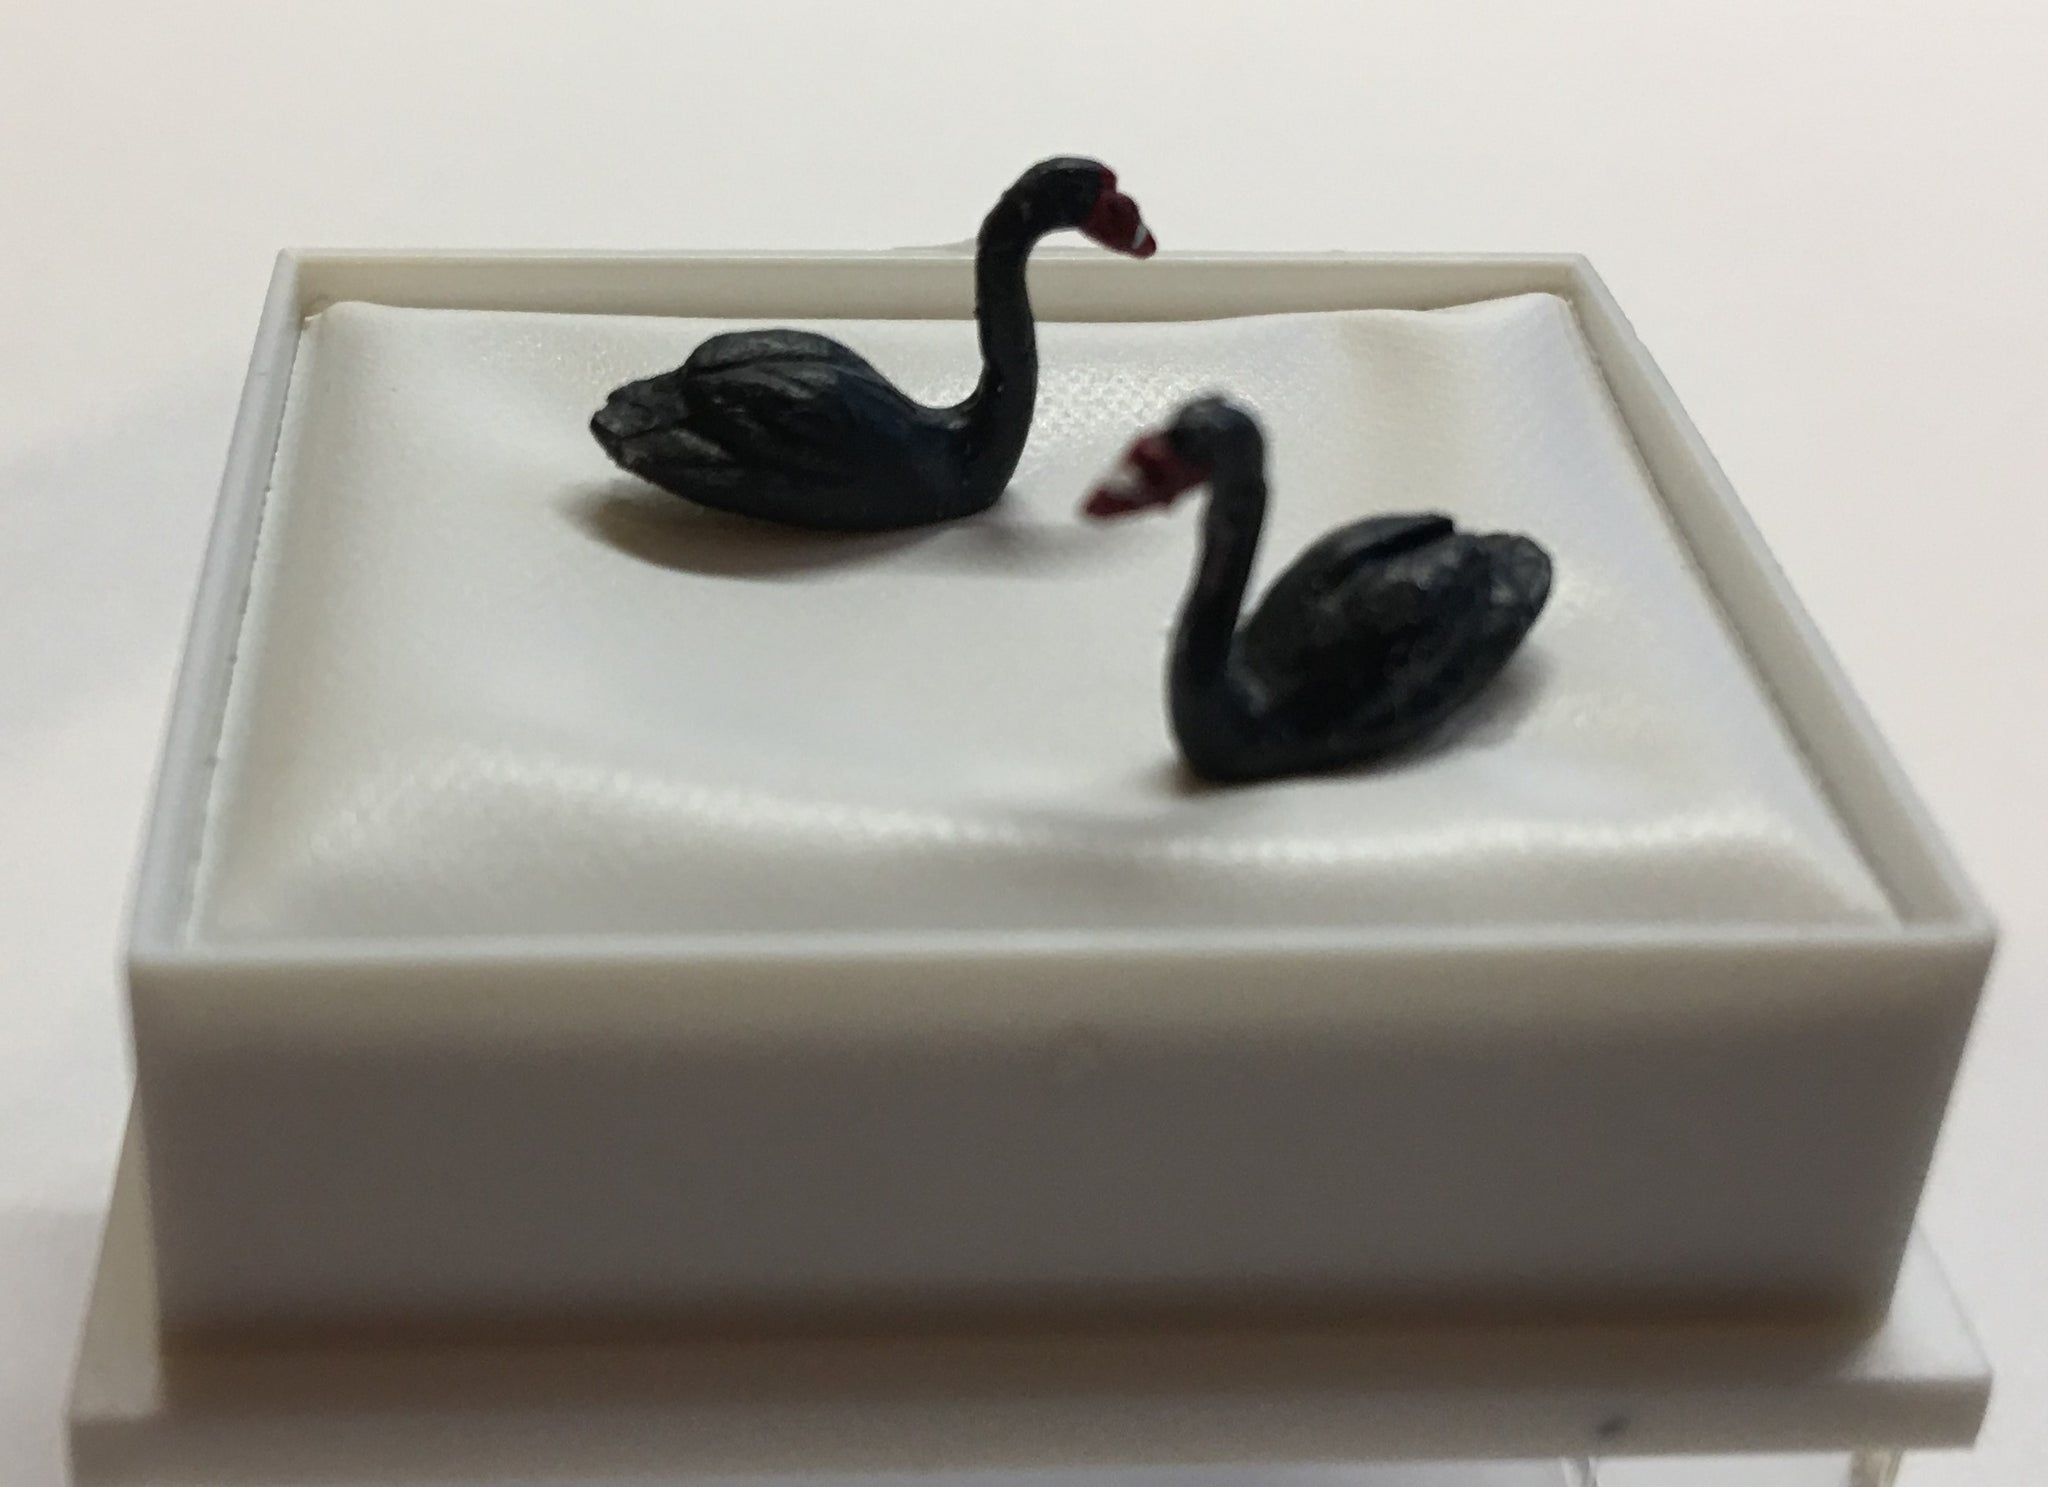 'Black Swans' '00' scale